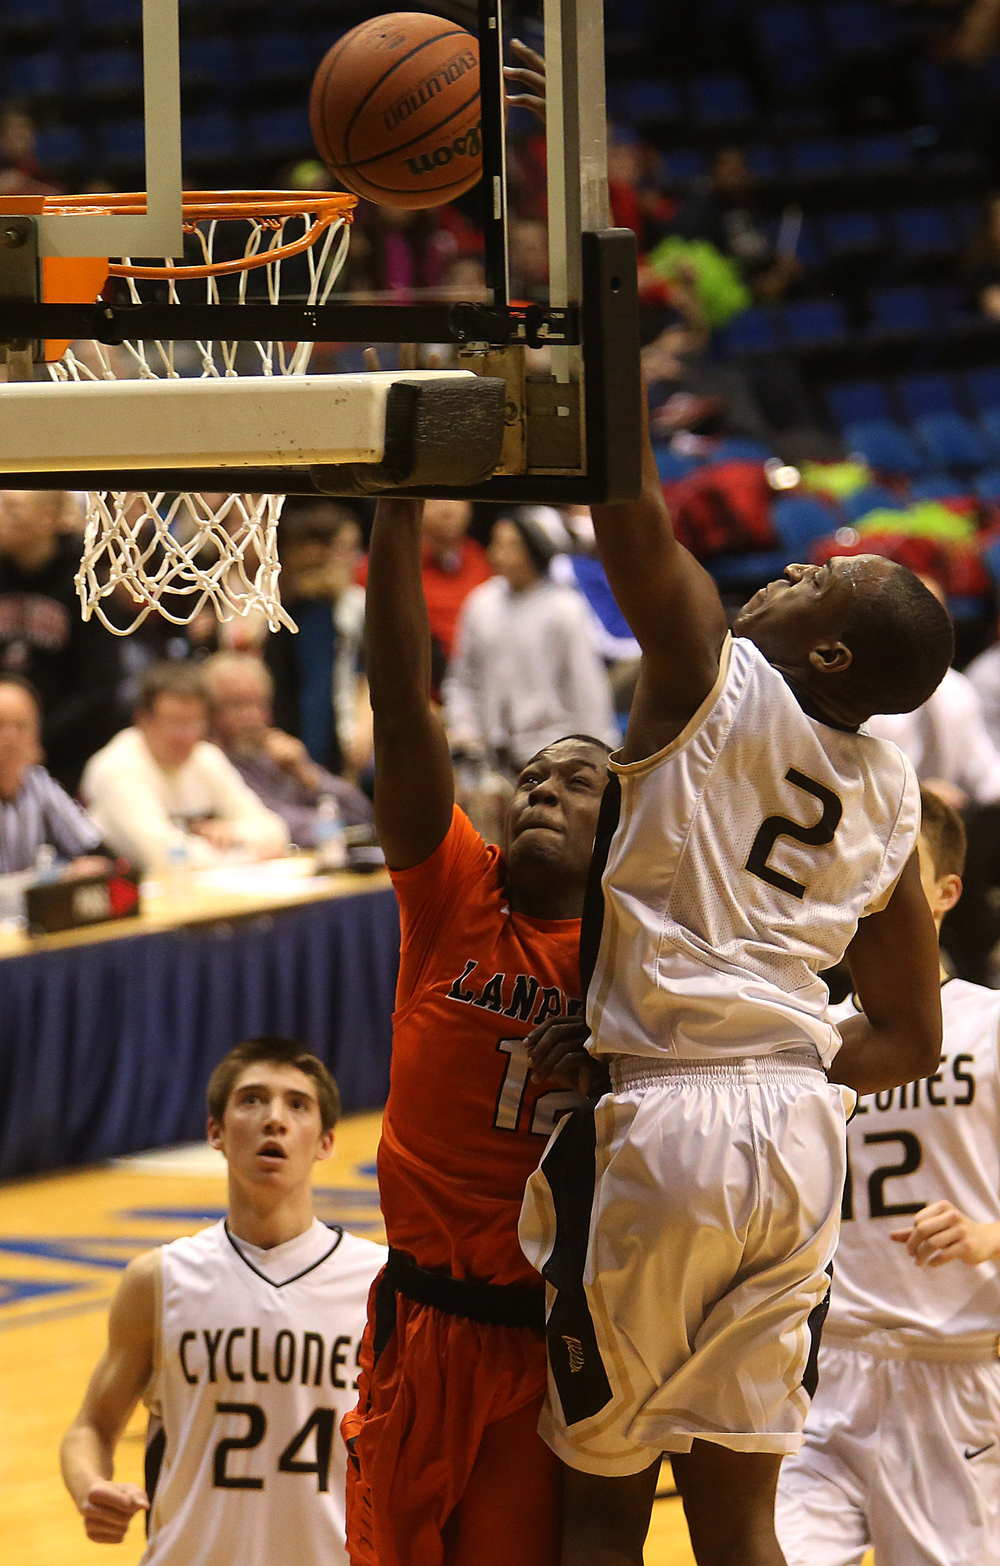 Lanphier player Jordan Tribbet tries to block a shot being made by Sacred Heart-Griffin player Avery Andrews. Lanphier High School defeated Sacred Heart-Griffin 73-42 during first night action at the Boys City Basketball Tournament at the Prairie Capital Convention Center in Springfield on Thursday, Jan. 22, 2015. David Spencer/The State Journal-Register